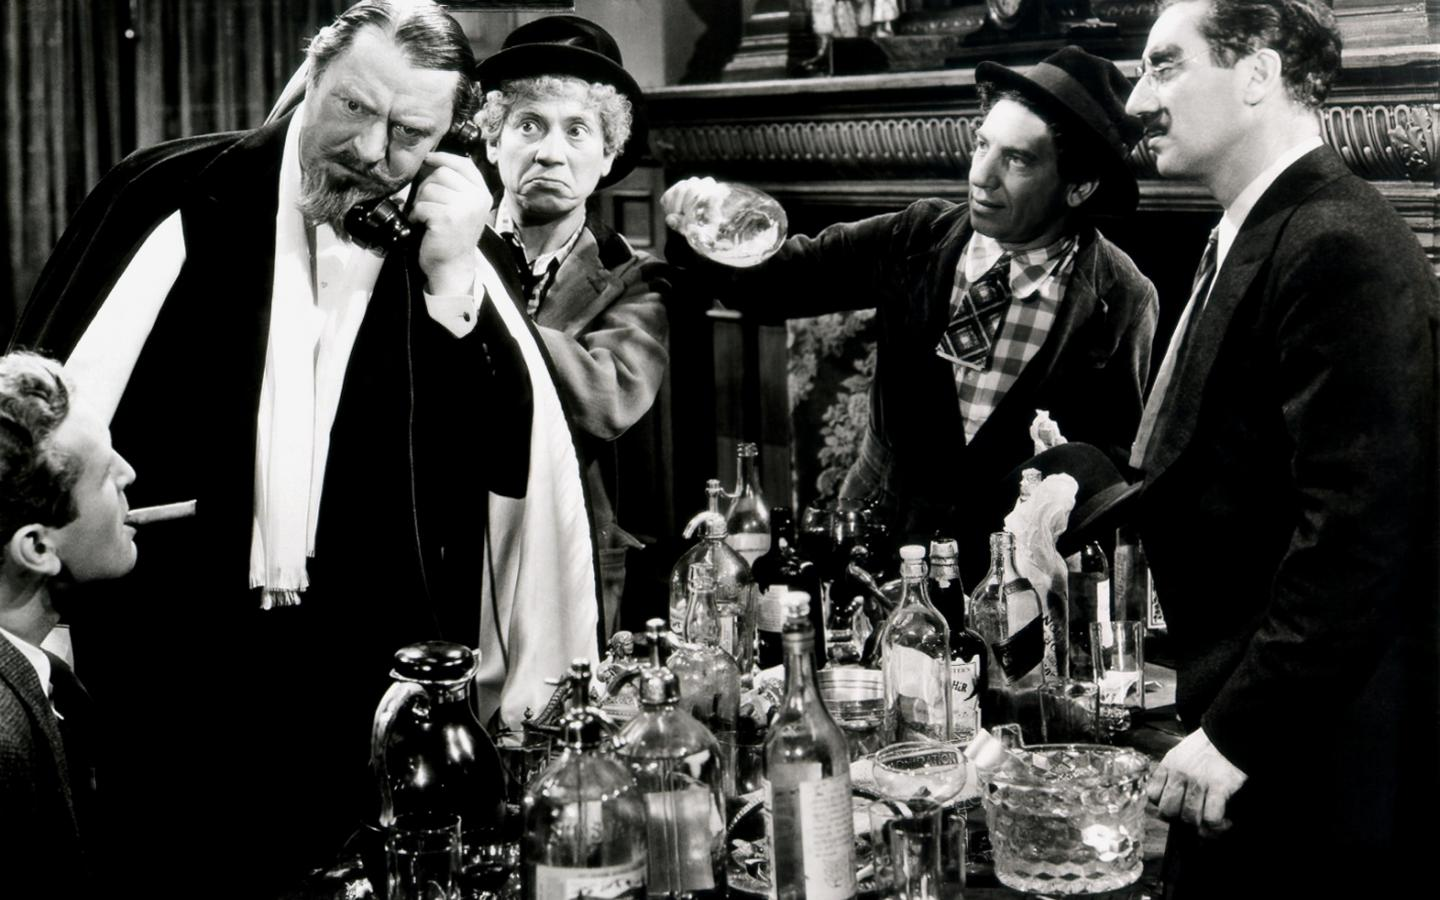 1440x900 - Marx Brothers Wallpapers 17